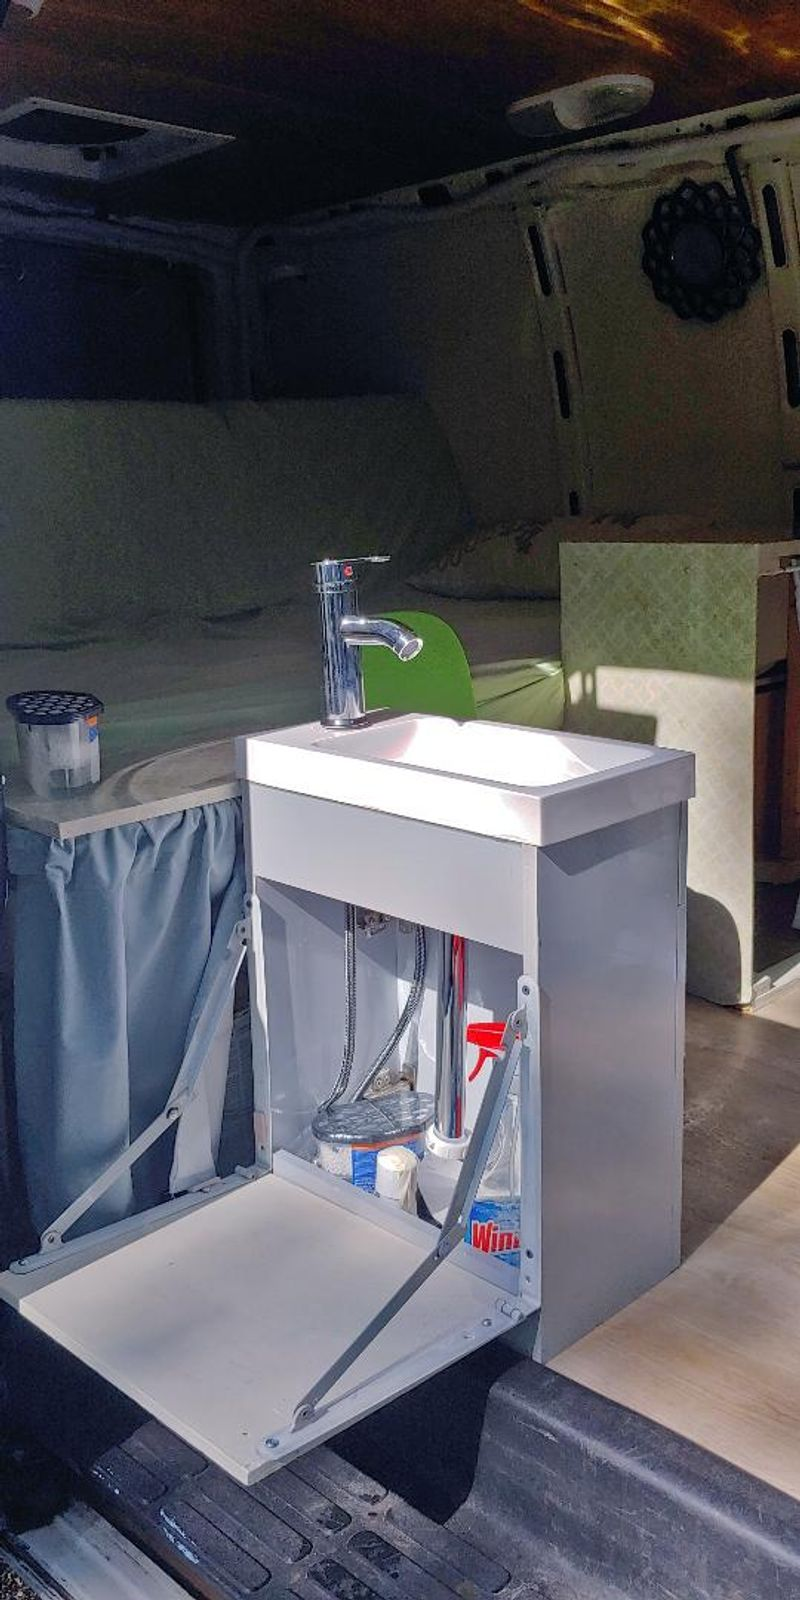 Picture 2/12 of a Solar conversion van for sale in New Smyrna Beach, Florida